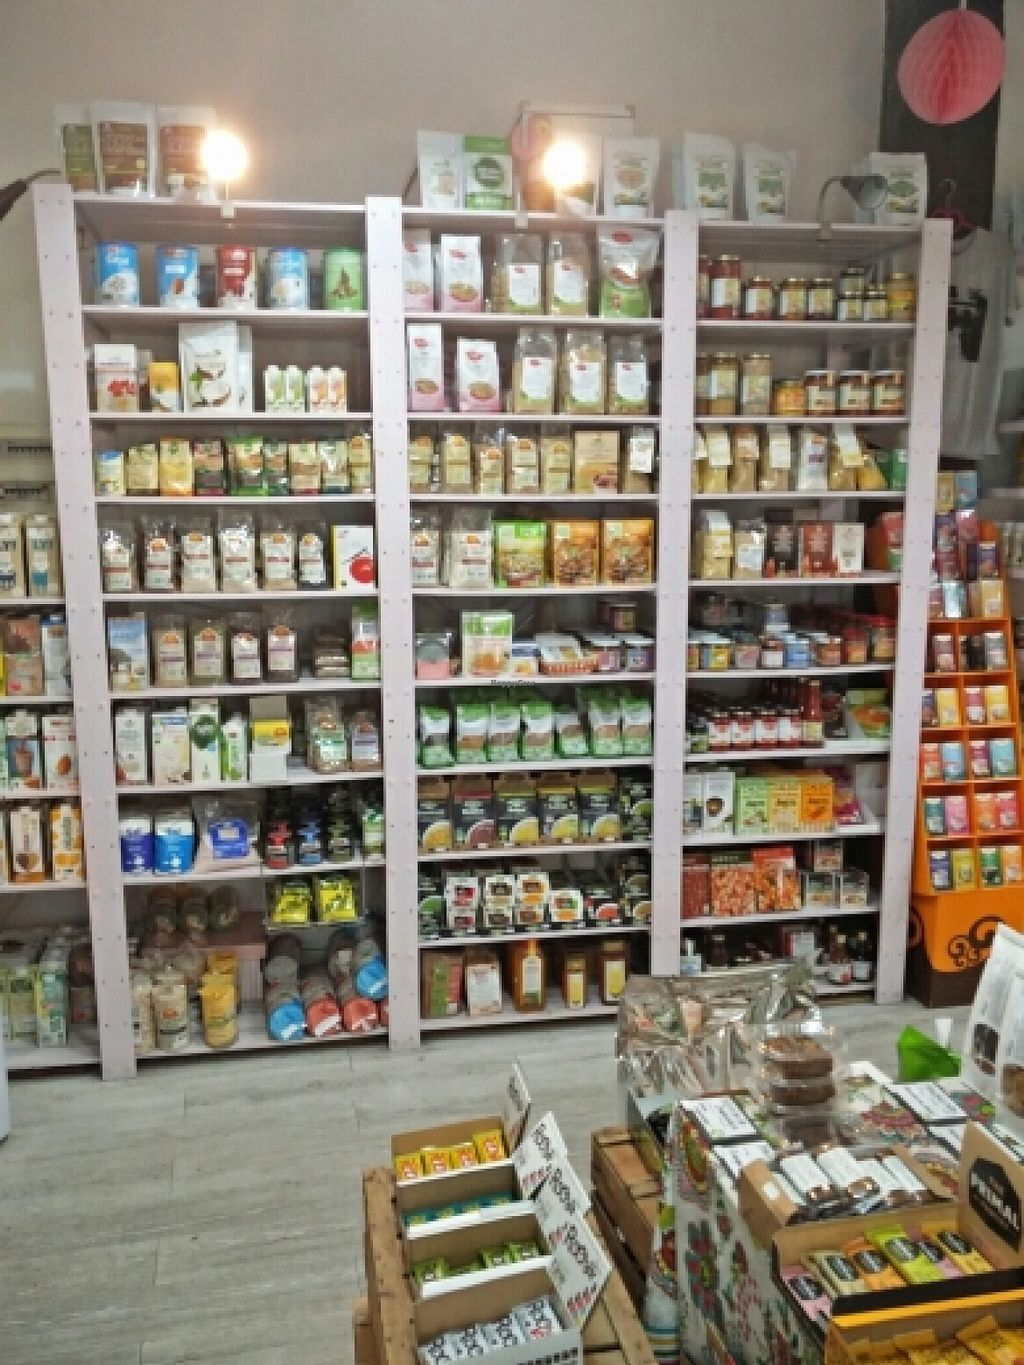 """Photo of Veggie Room  by <a href=""""/members/profile/Harp"""">Harp</a> <br/>Veggie Room <br/> March 5, 2016  - <a href='/contact/abuse/image/44943/138800'>Report</a>"""